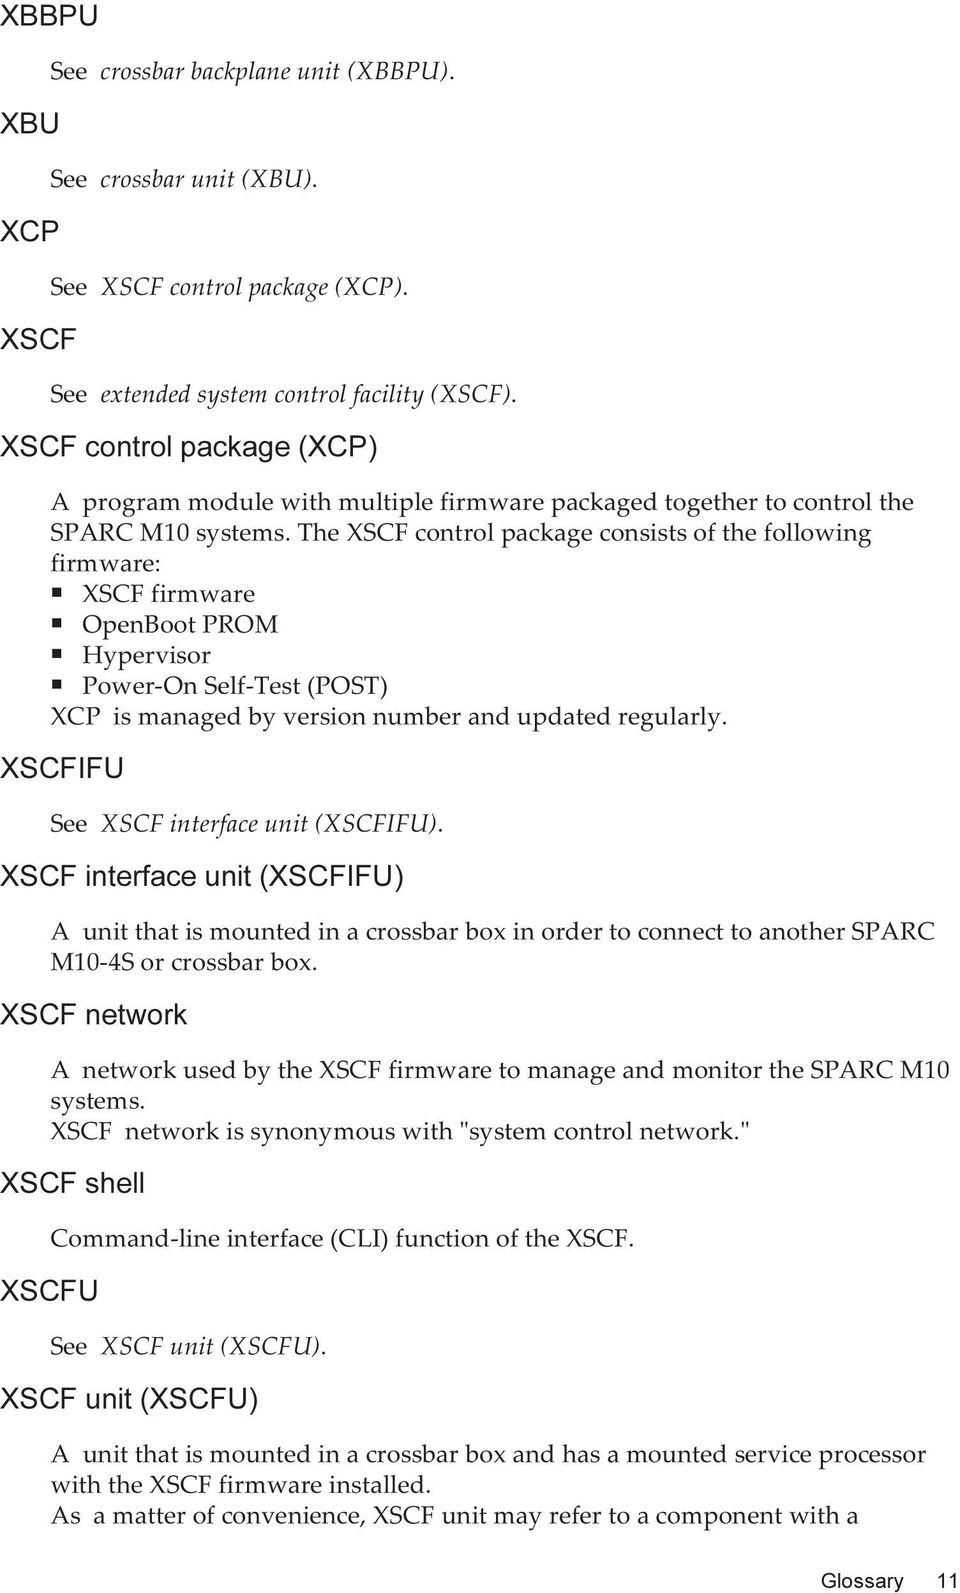 the XSCF control package consists of the following firmware: XSCF firmware OpenBoot PROM Hypervisor Power-On Self-Test (POST) XCP is managed by version number and updated regularly.